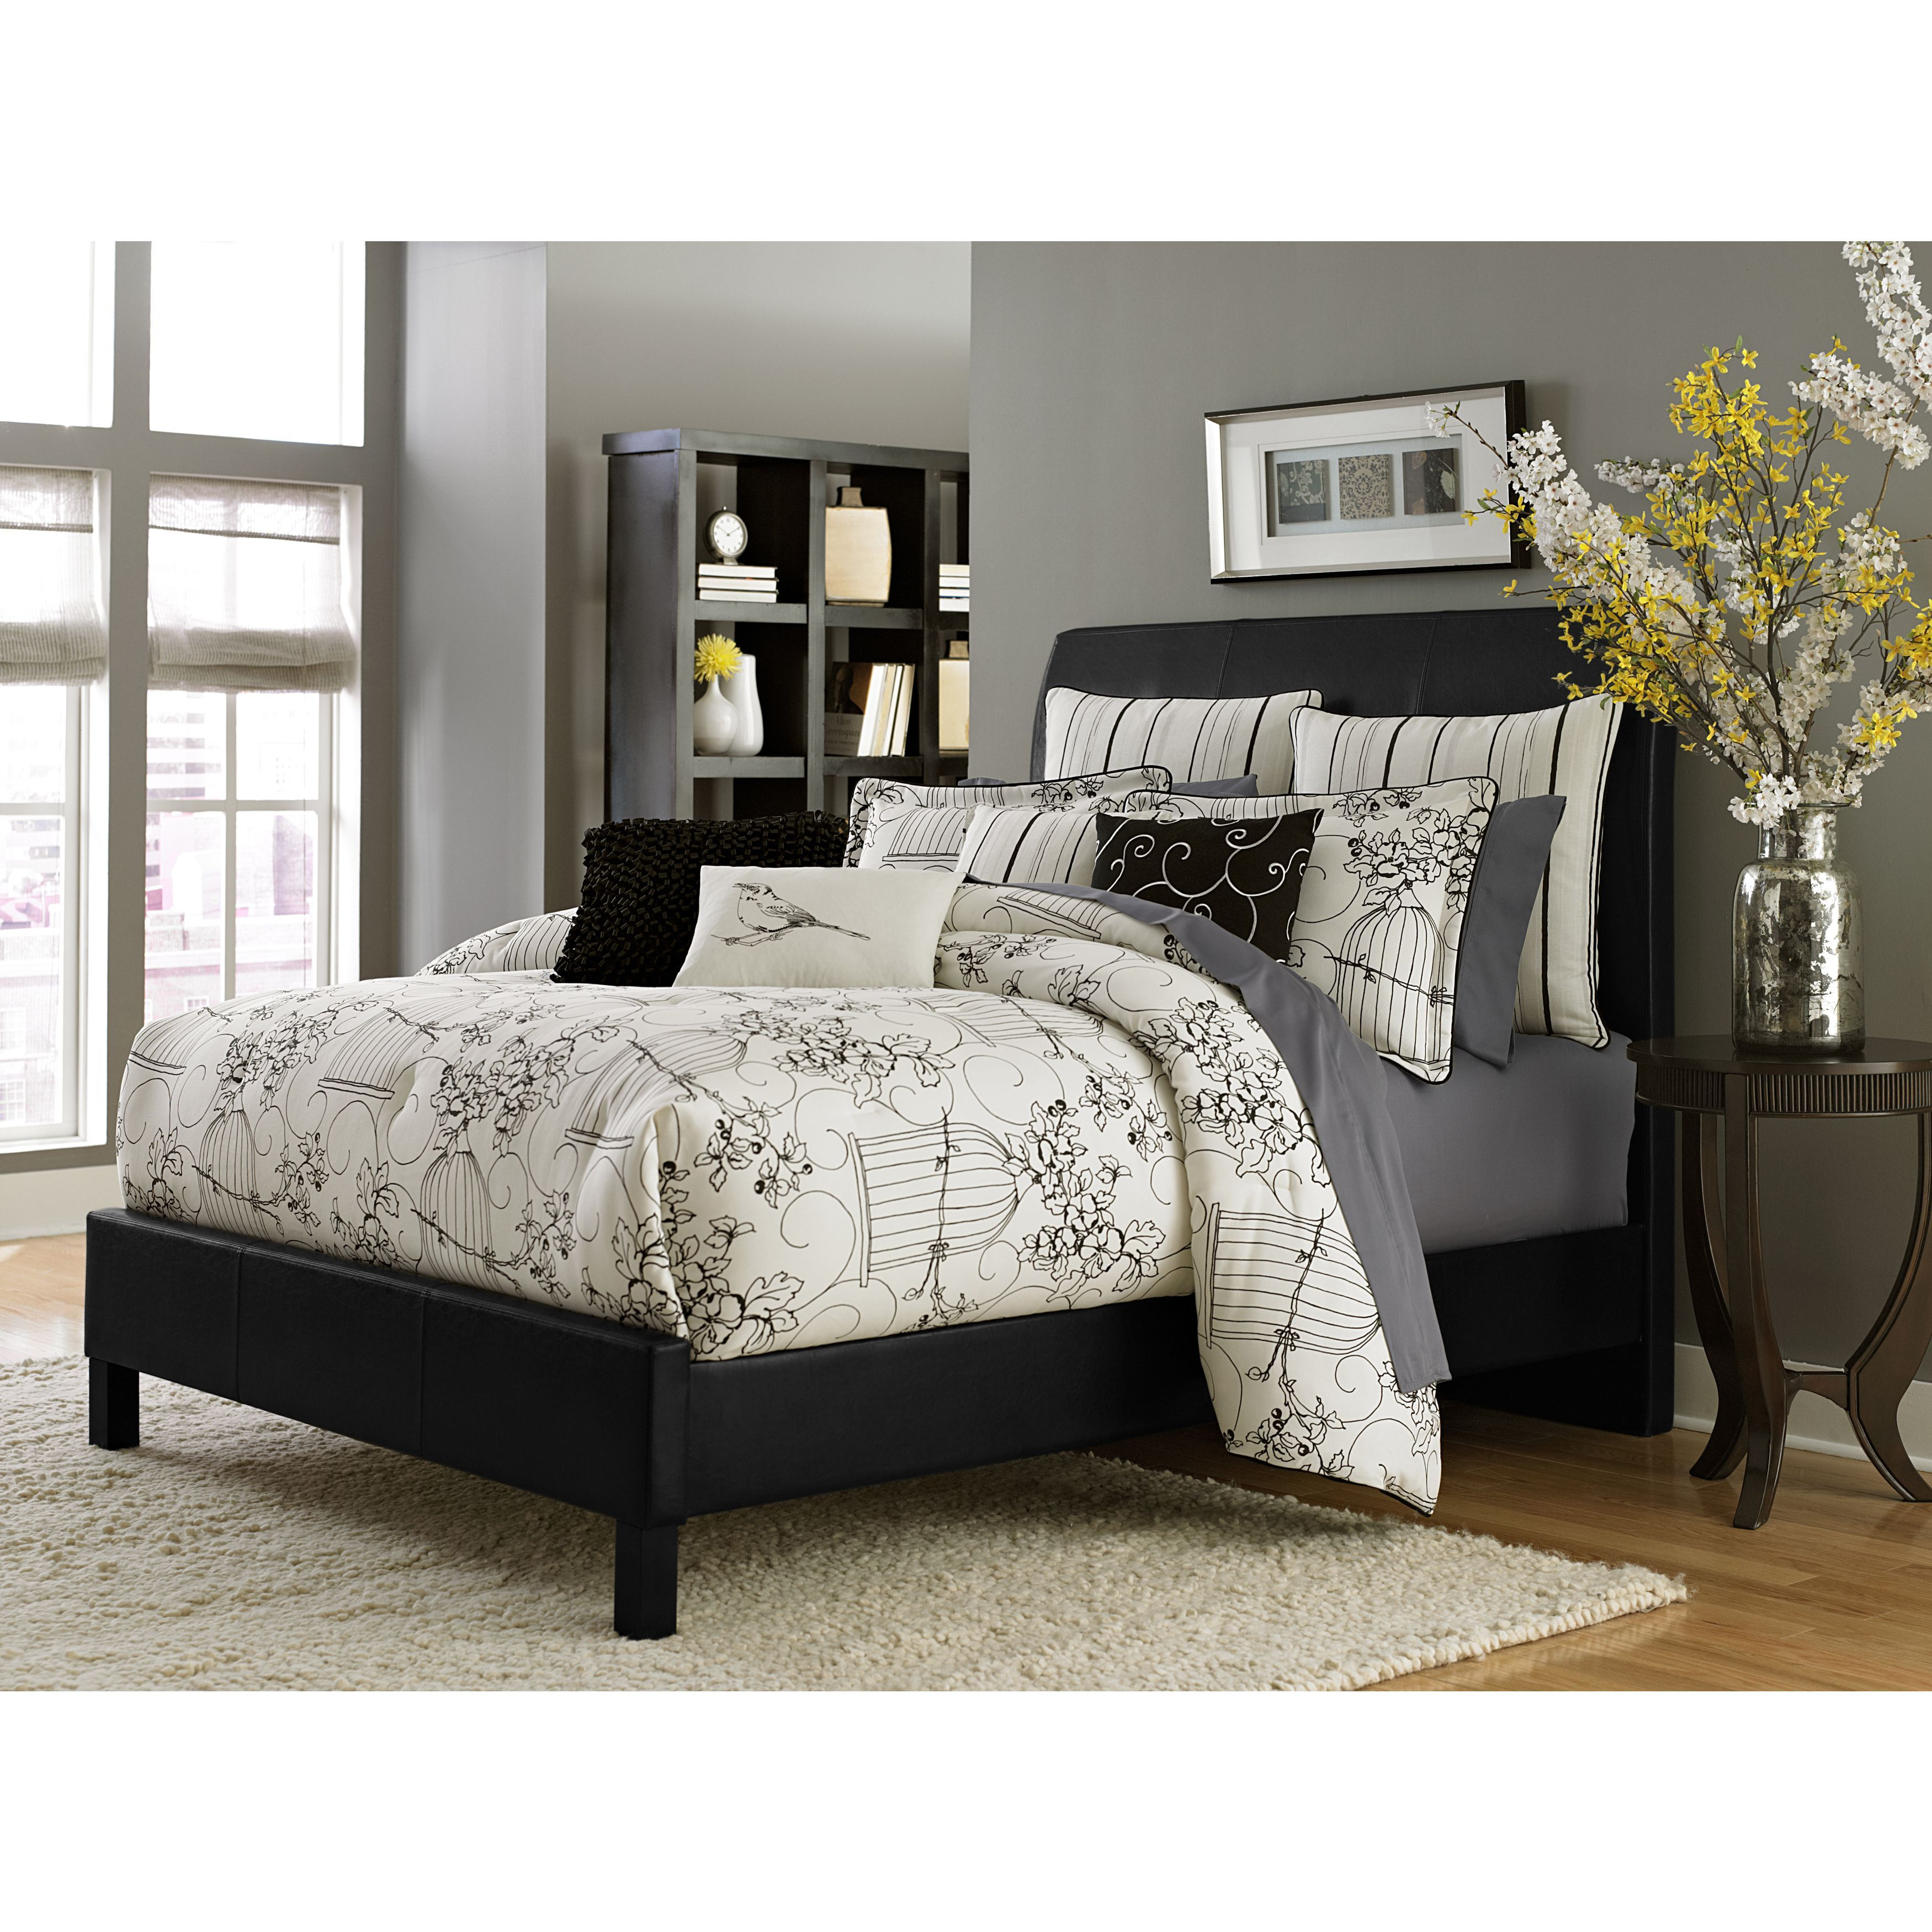 amini frost page loft items bedding a sets nightstand by furniture to bedroom collection upholstered enlarge michael click bed